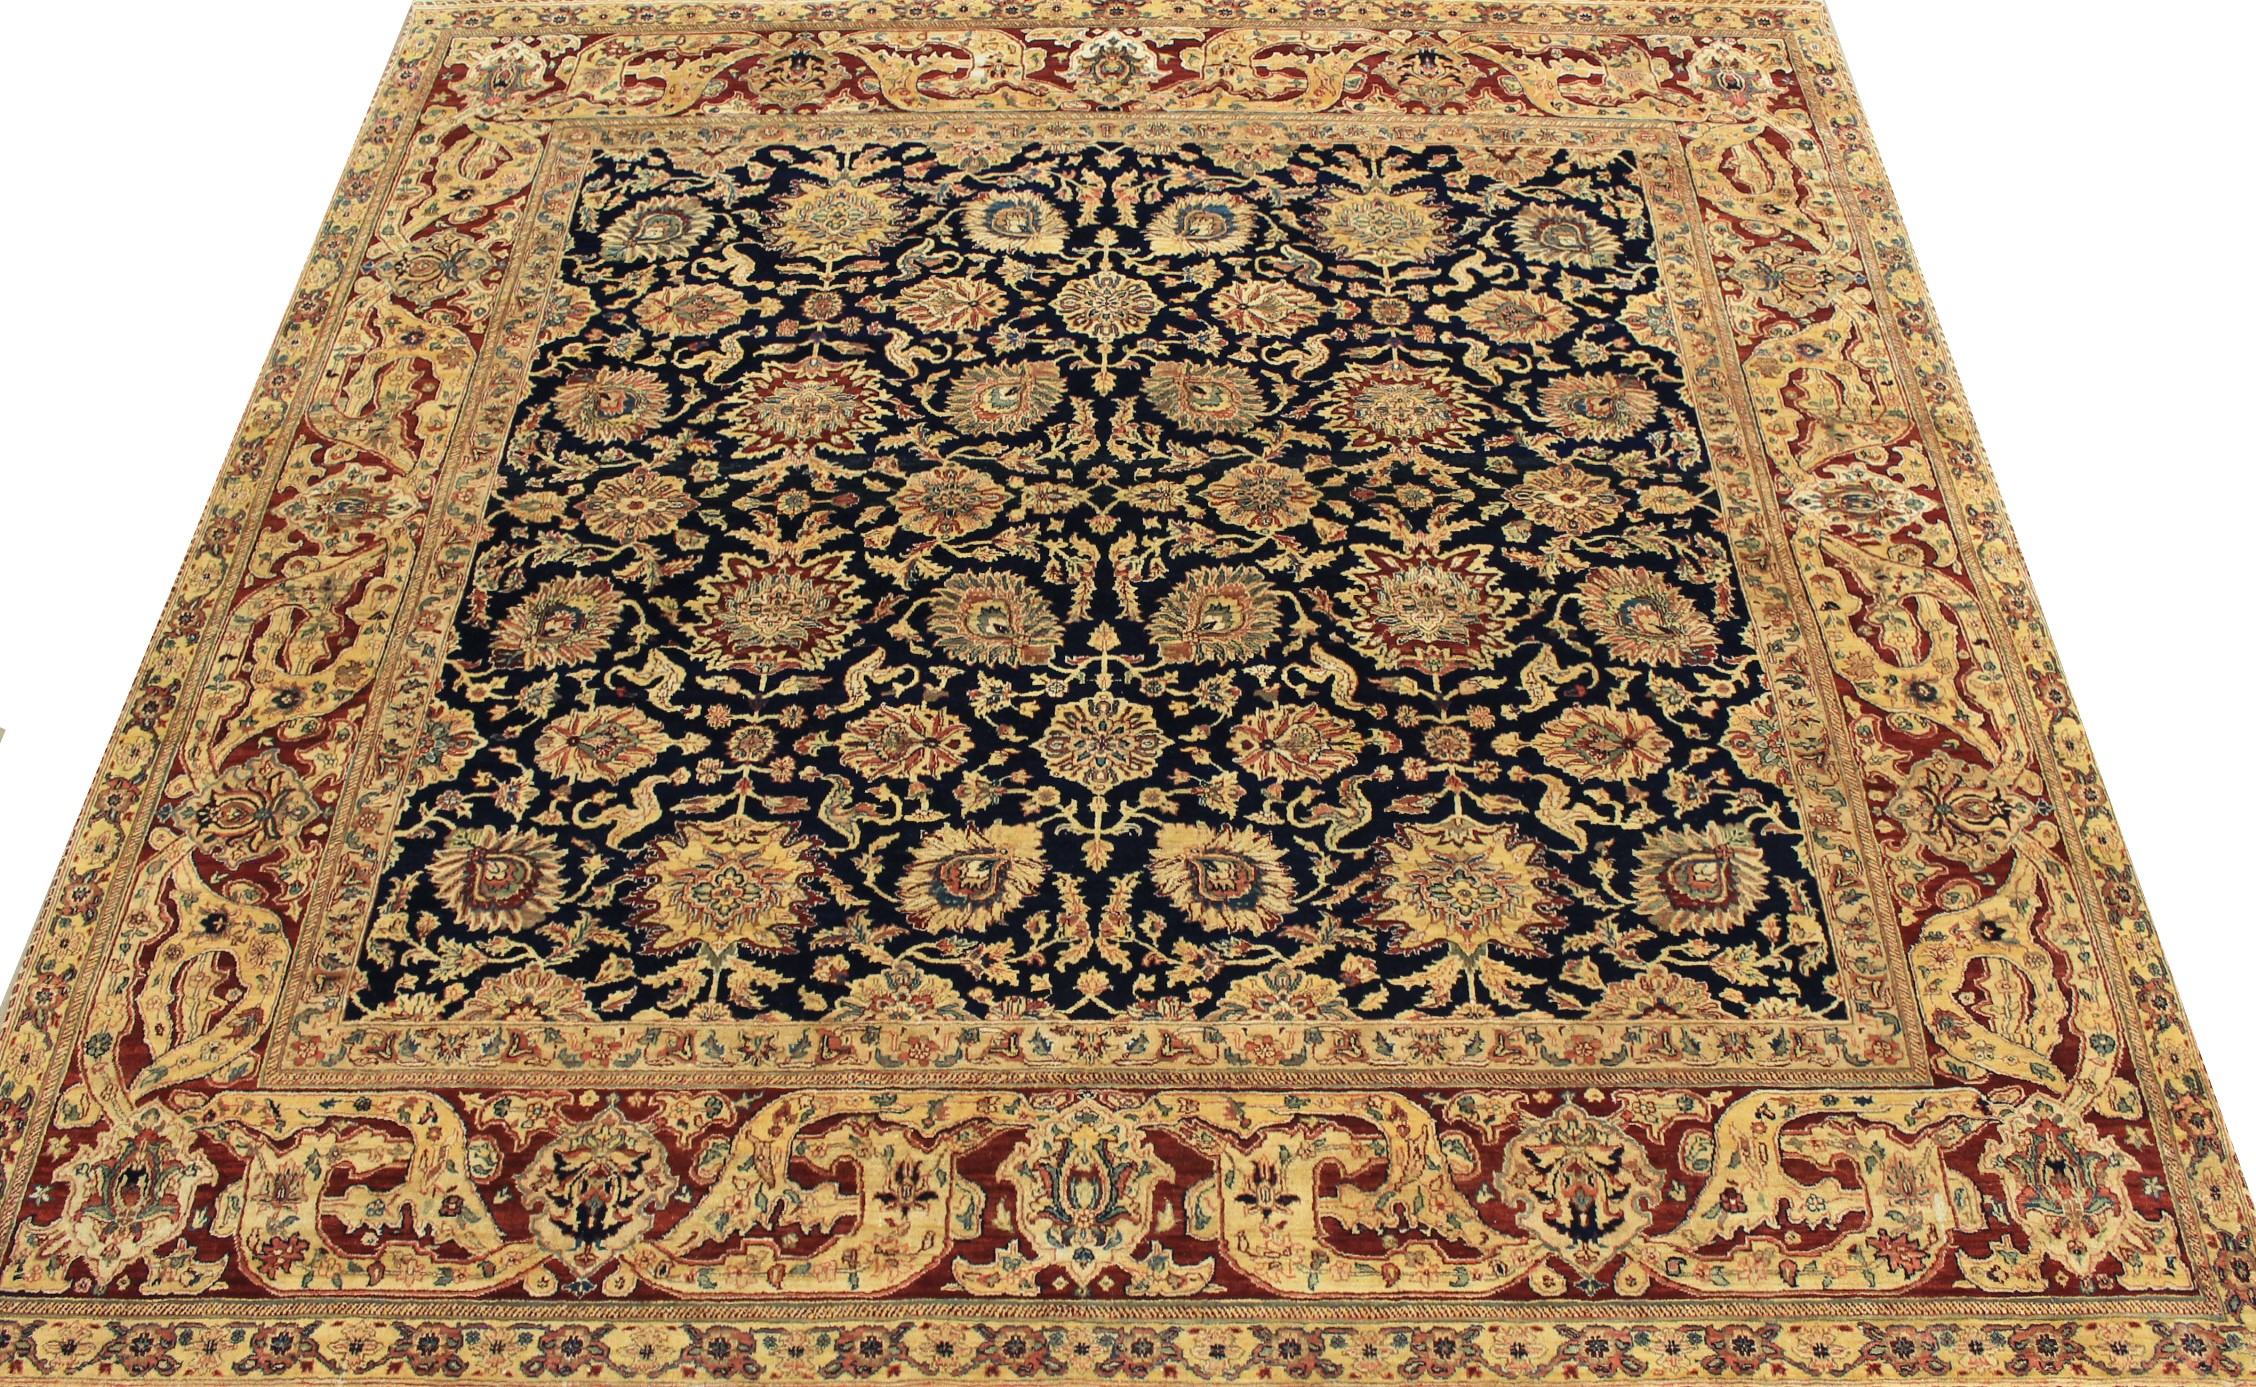 9 ft. & Over Round & Square Traditional Hand Knotted Wool Area Rug - MR024516